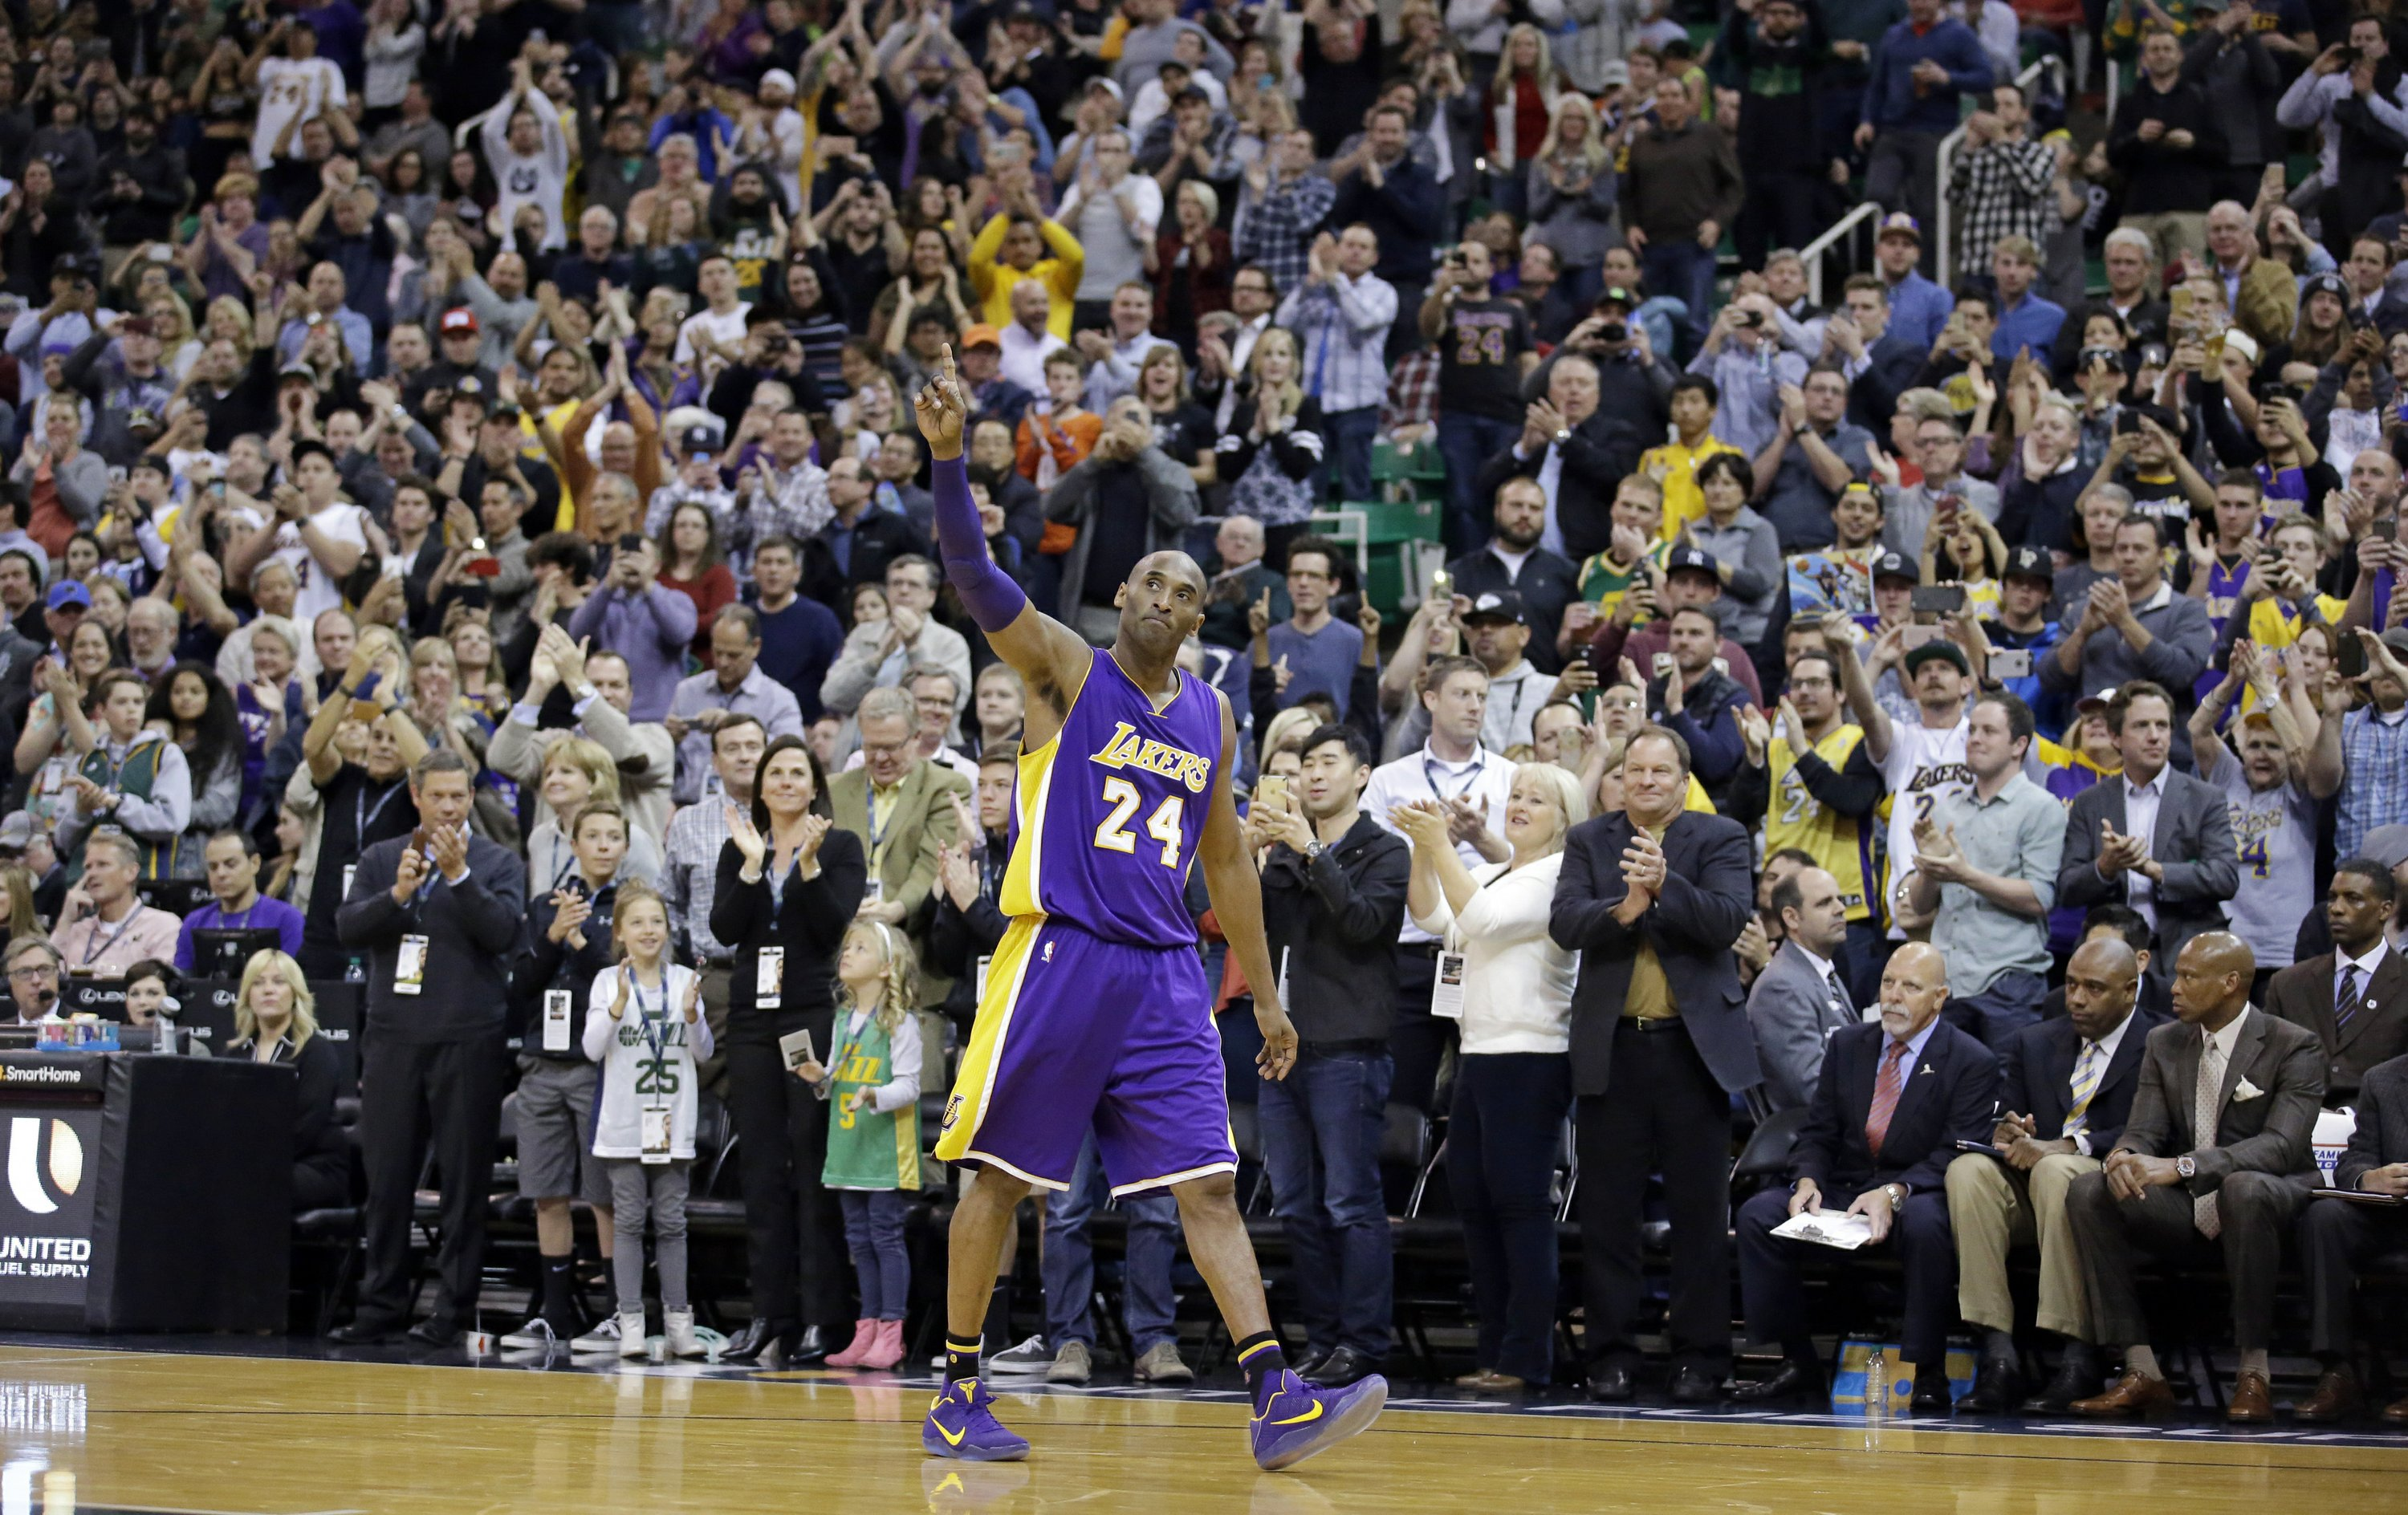 Kobe Bryant, Lakers Great And Basketball Icon, Dies In Crash